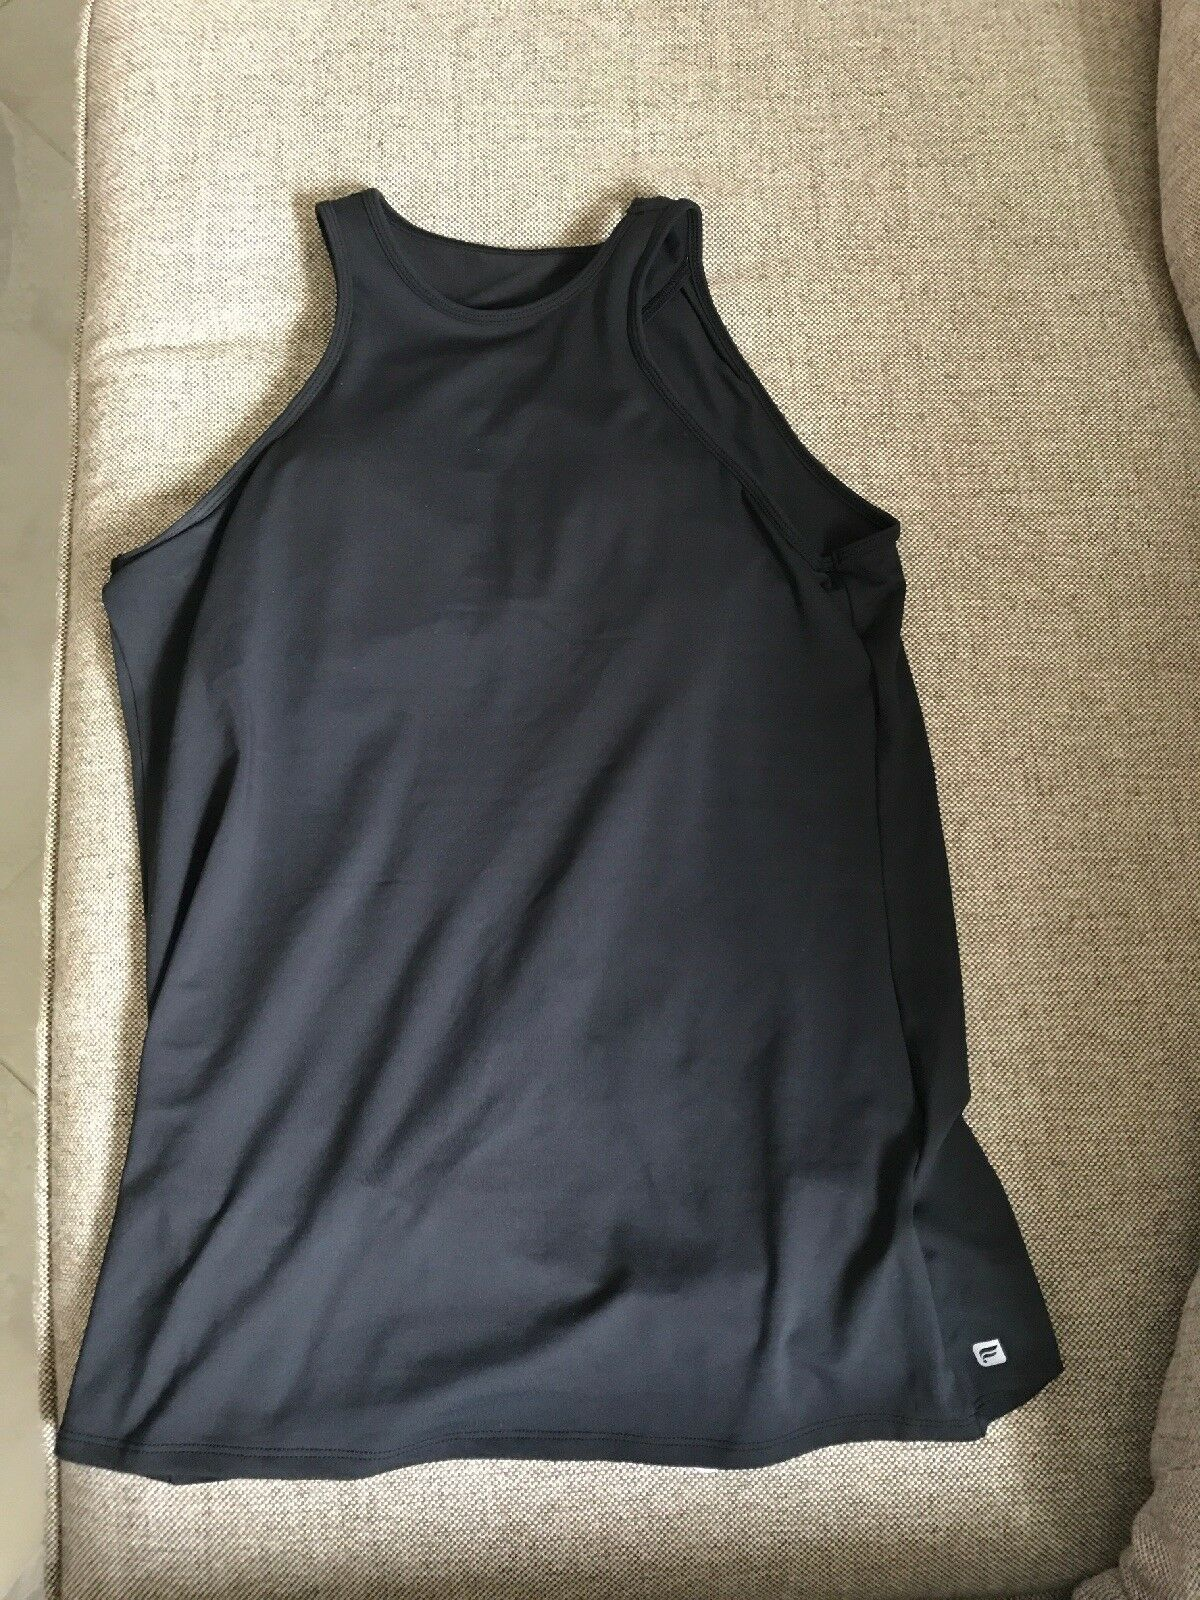 Fabletics Tinley Performance Tank Size Small - NWT